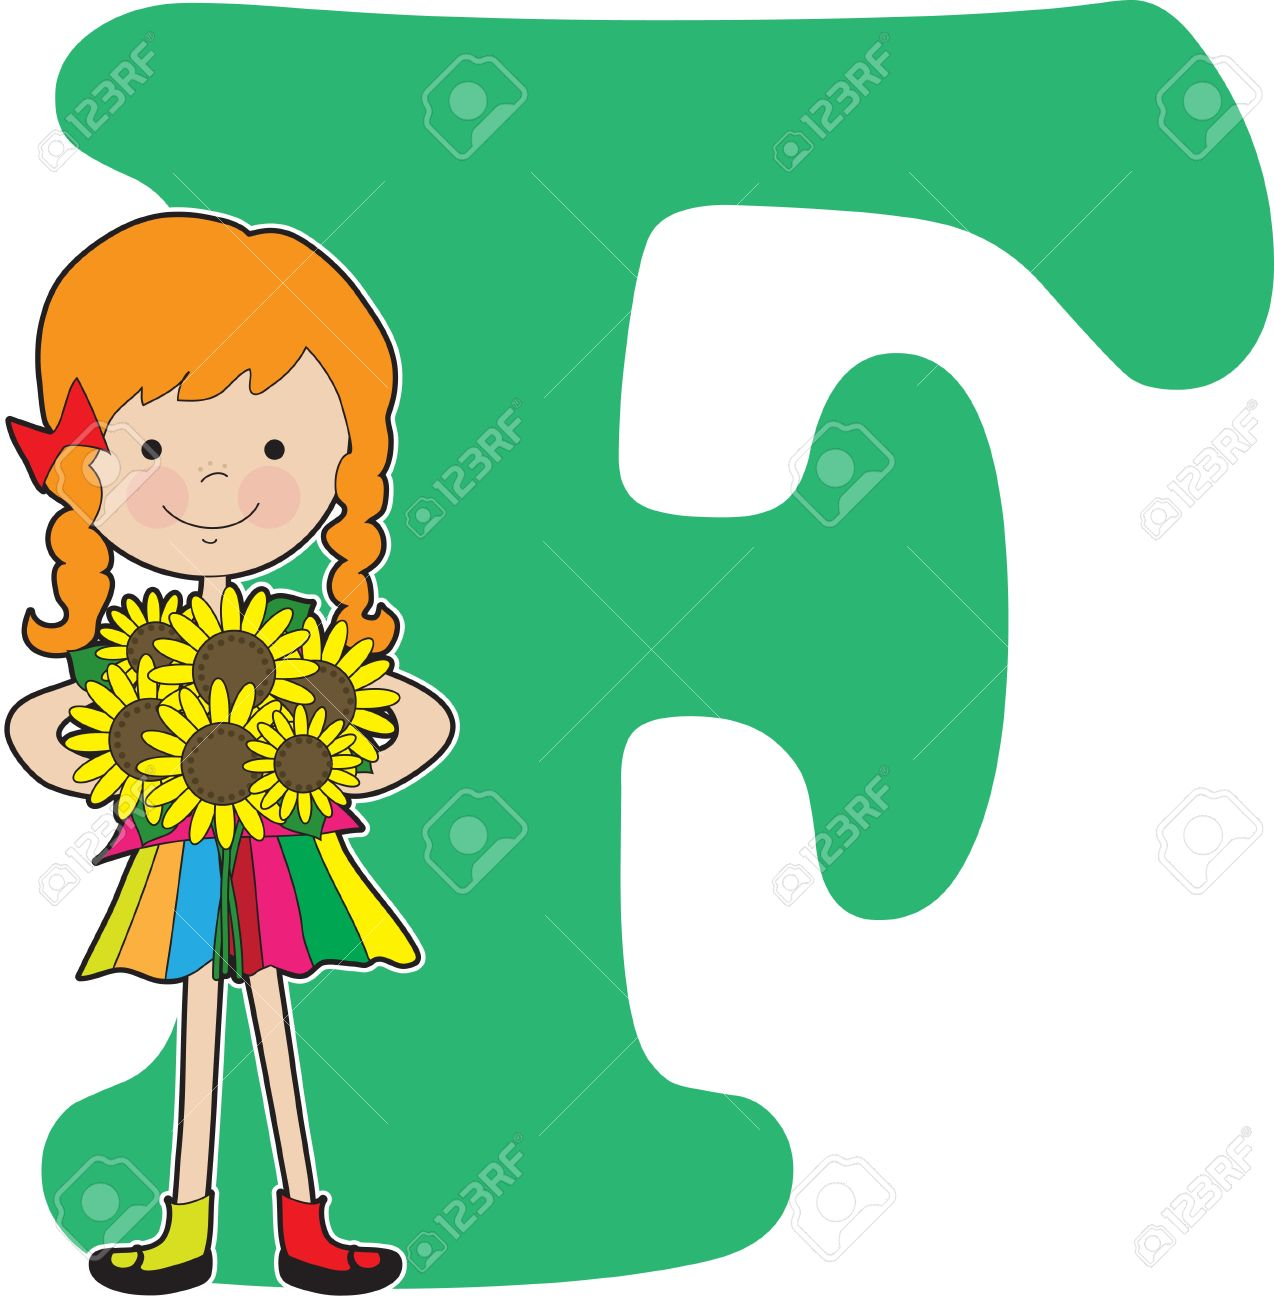 a young girl holding flowers to stand for the letter f royalty free rh 123rf com clipart of letter f letter f clipart black and white